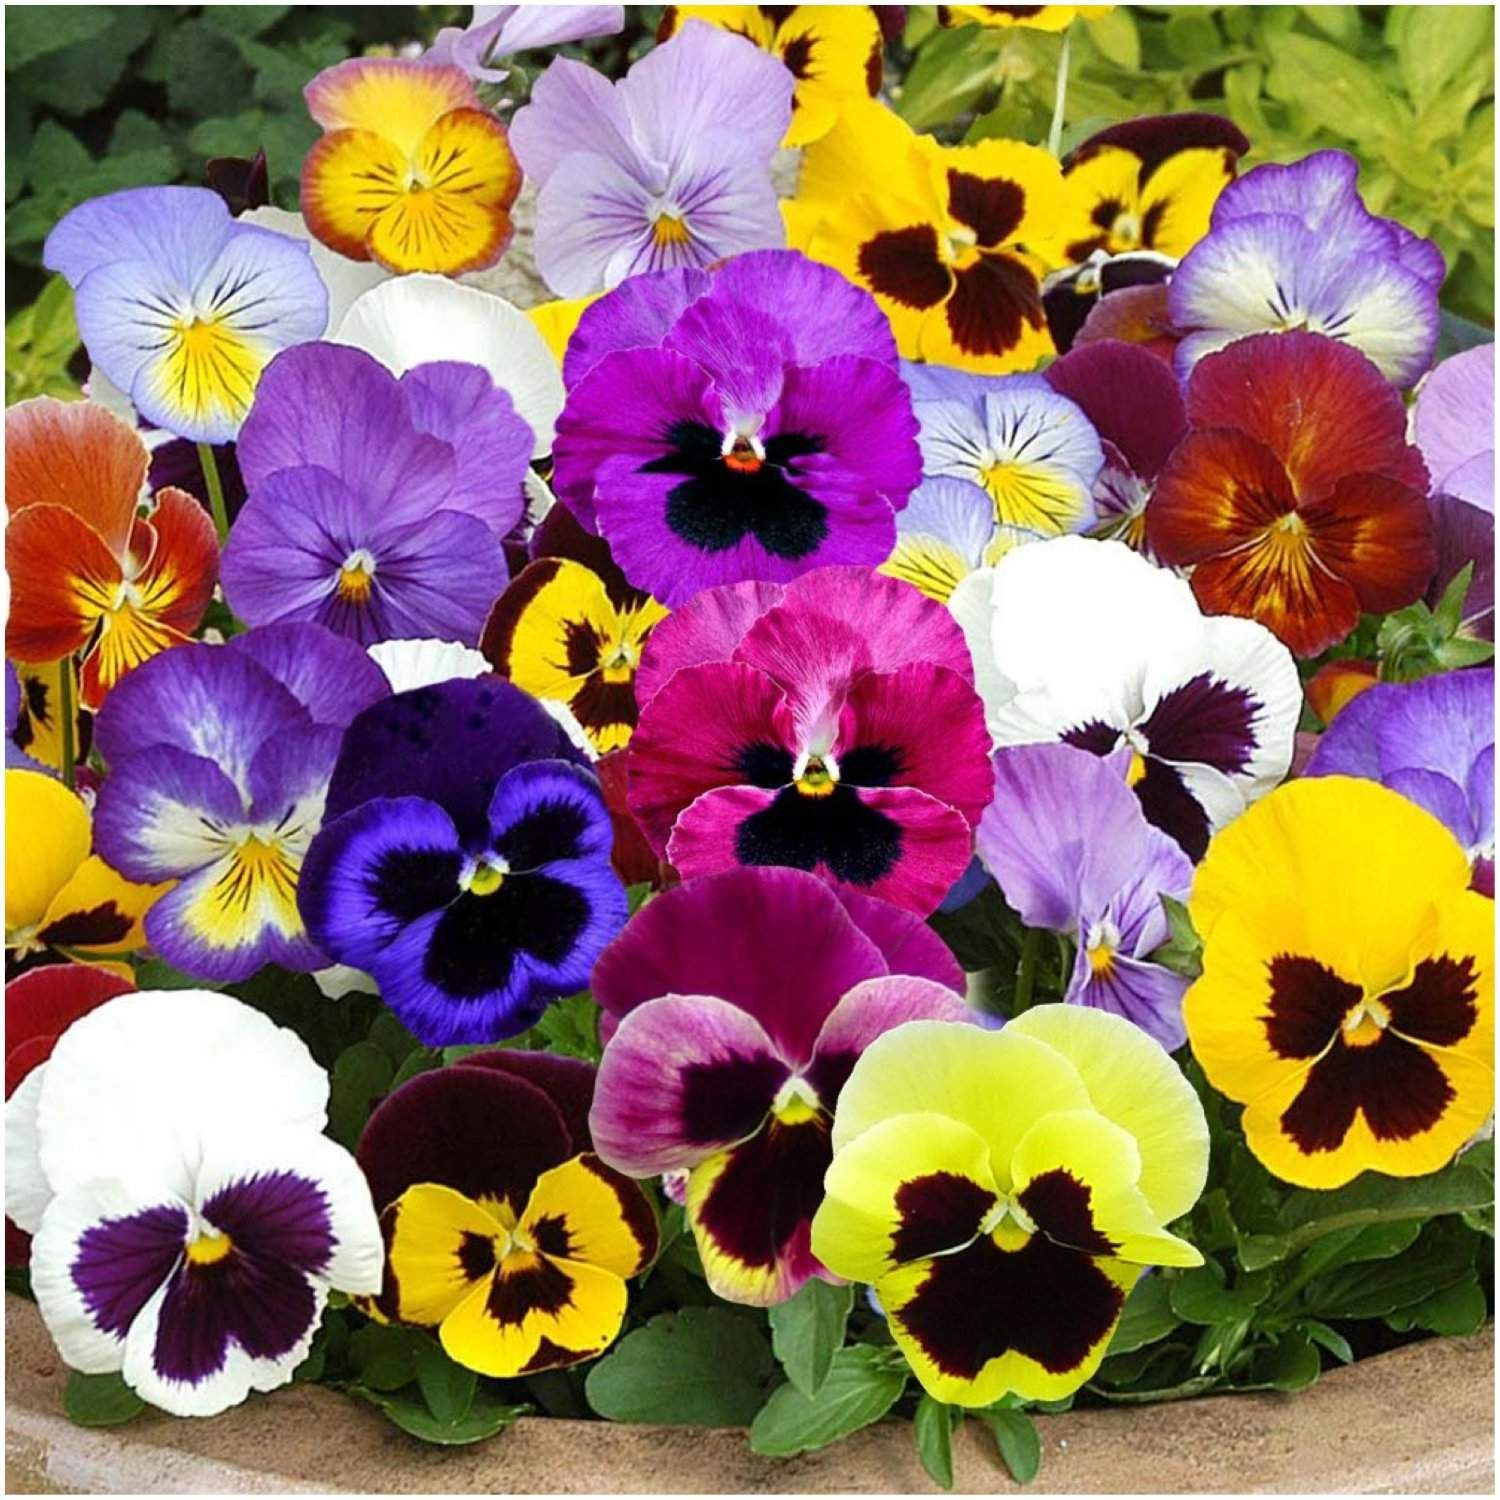 How To Blend Edible Landscaping With Ornamentals Pansies Flowers Flower Seeds Pansies